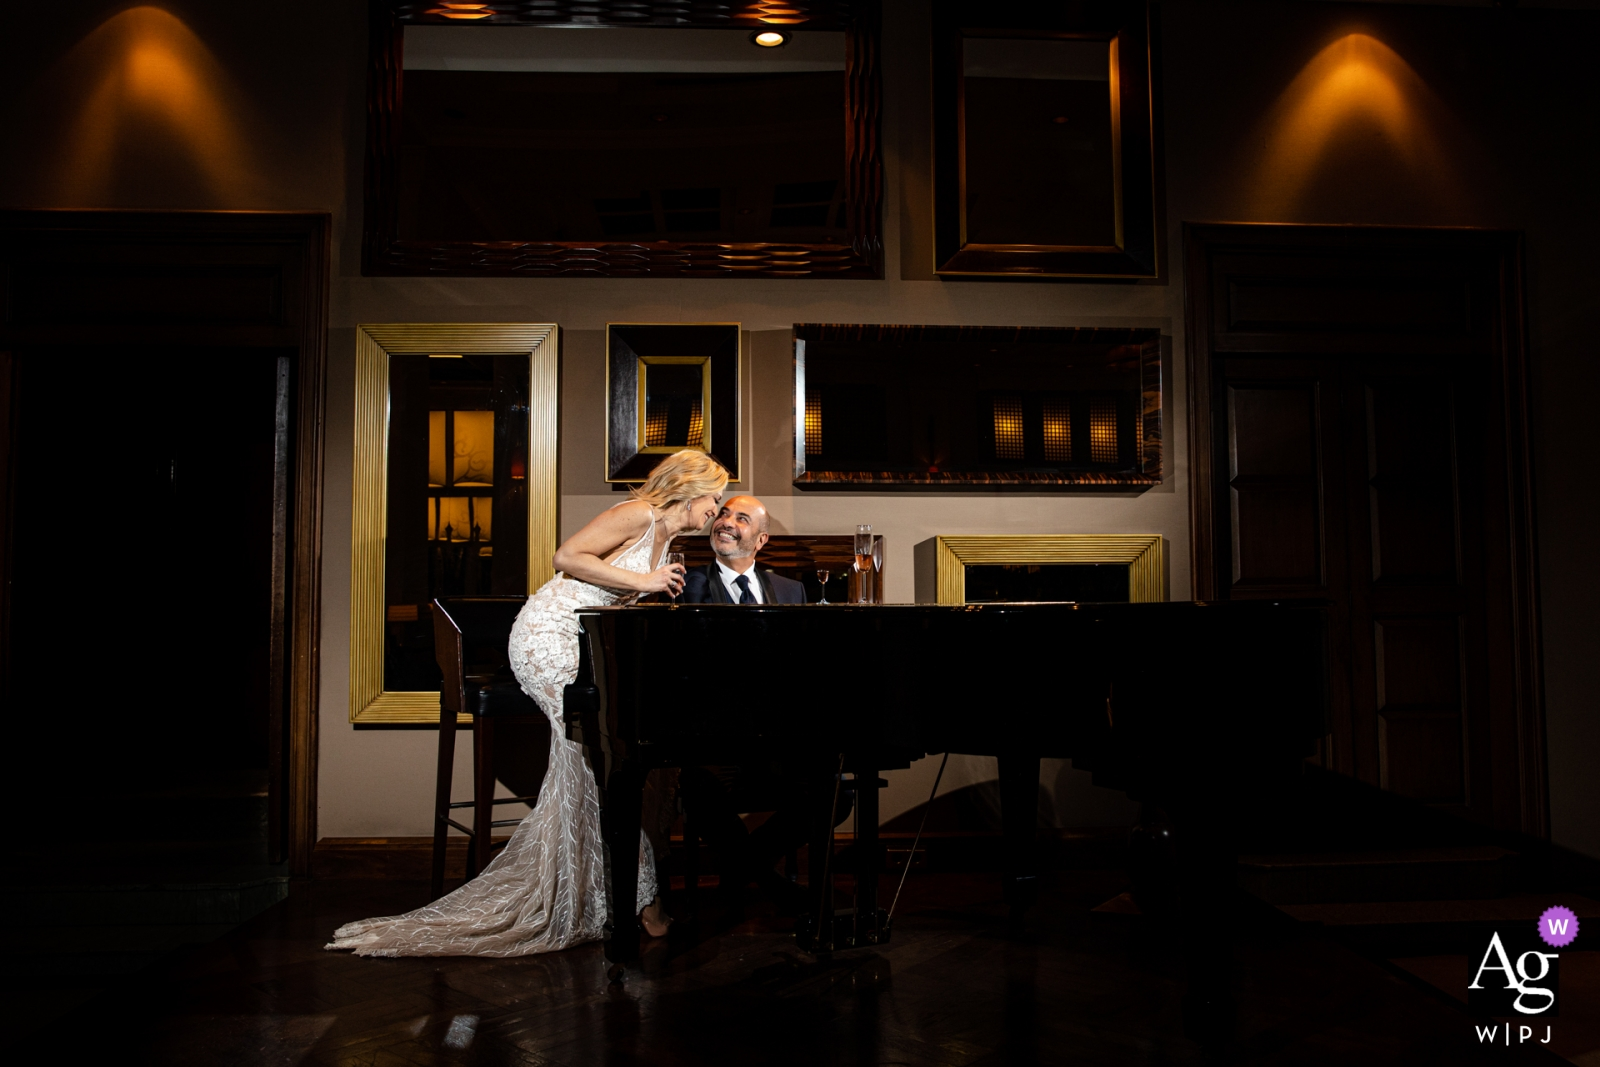 Swiss Hotel Bosphorus wedding photo | Groom is playing piano and the bride is sitting next to him and they are slaughtering and drinking champagne